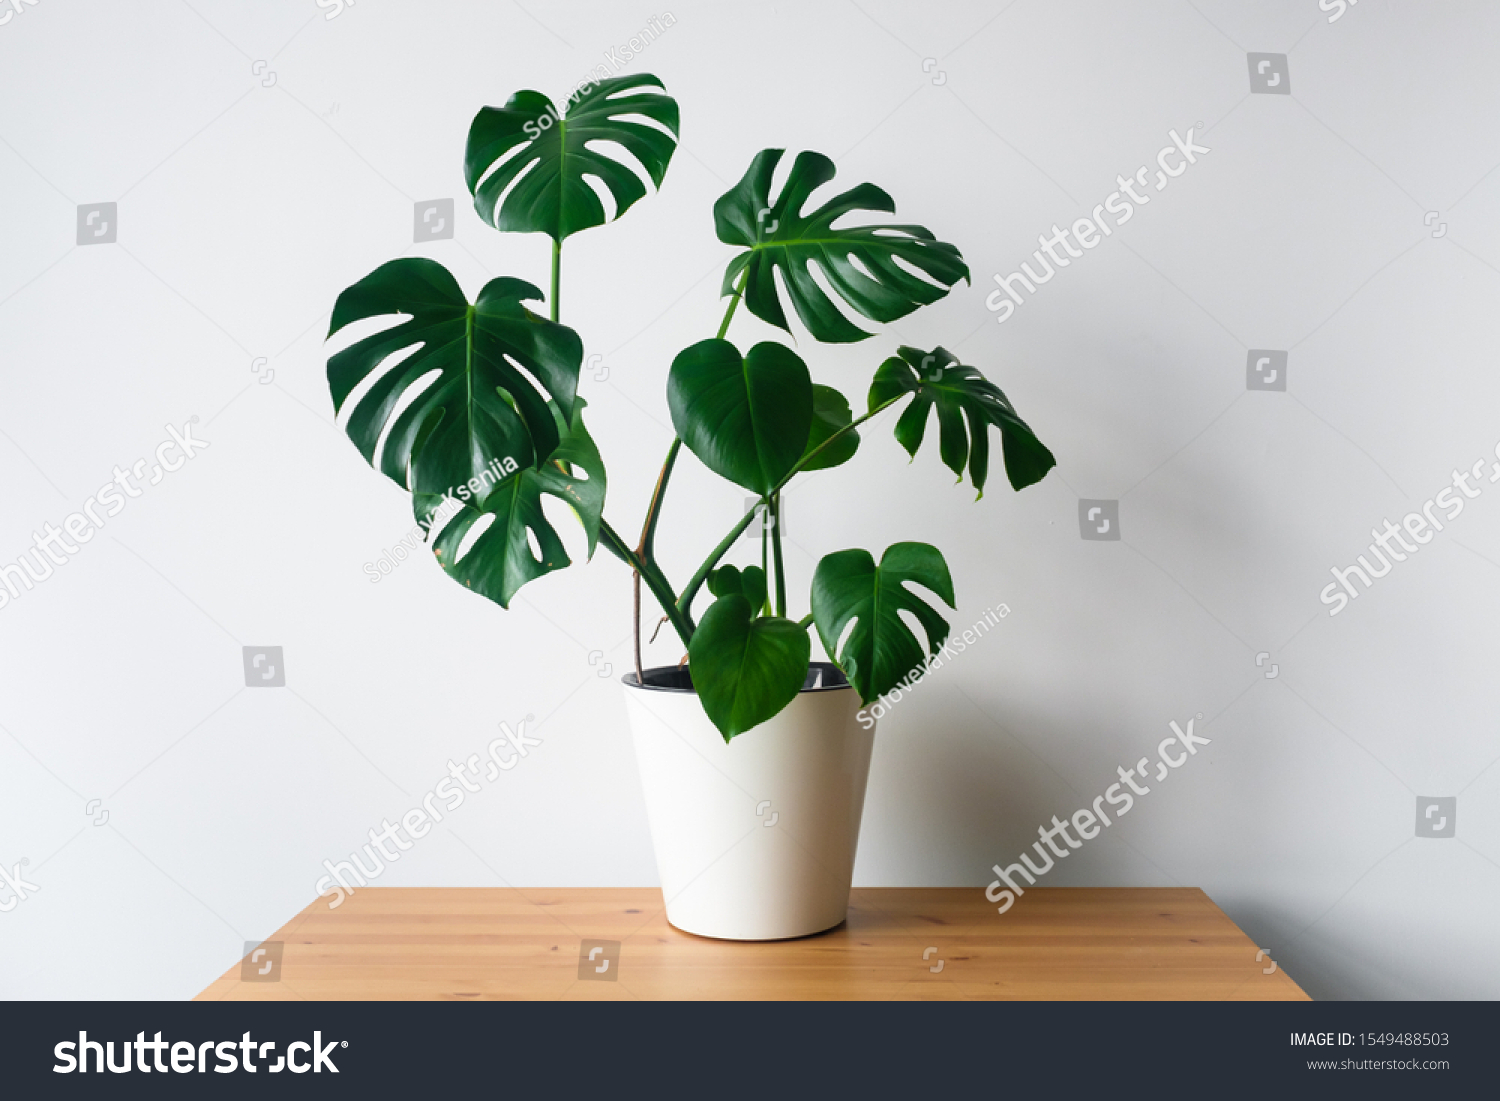 Beautiful monstera flower in a white pot stands on a wooden table on a white background. The concept of minimalism. Hipster scandinavian style room interior. Empty white wall and copy space. #1549488503